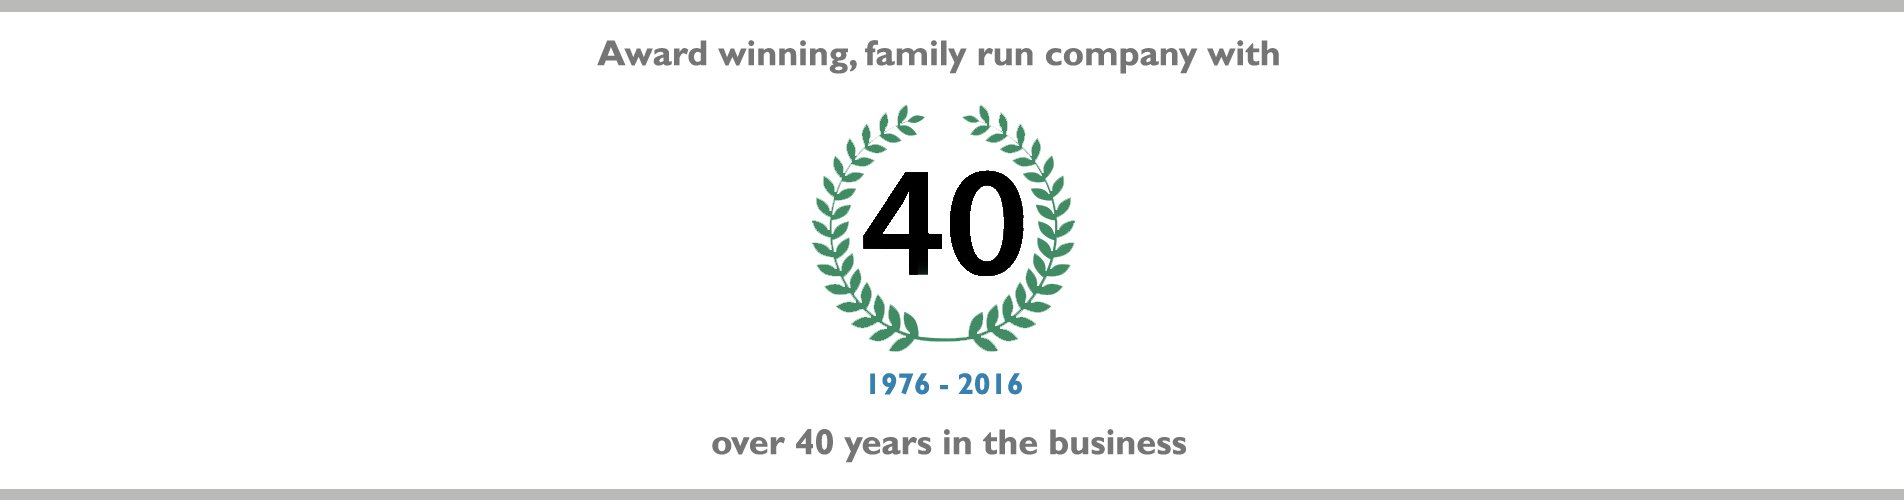 award winning family run company with 40 years in the business